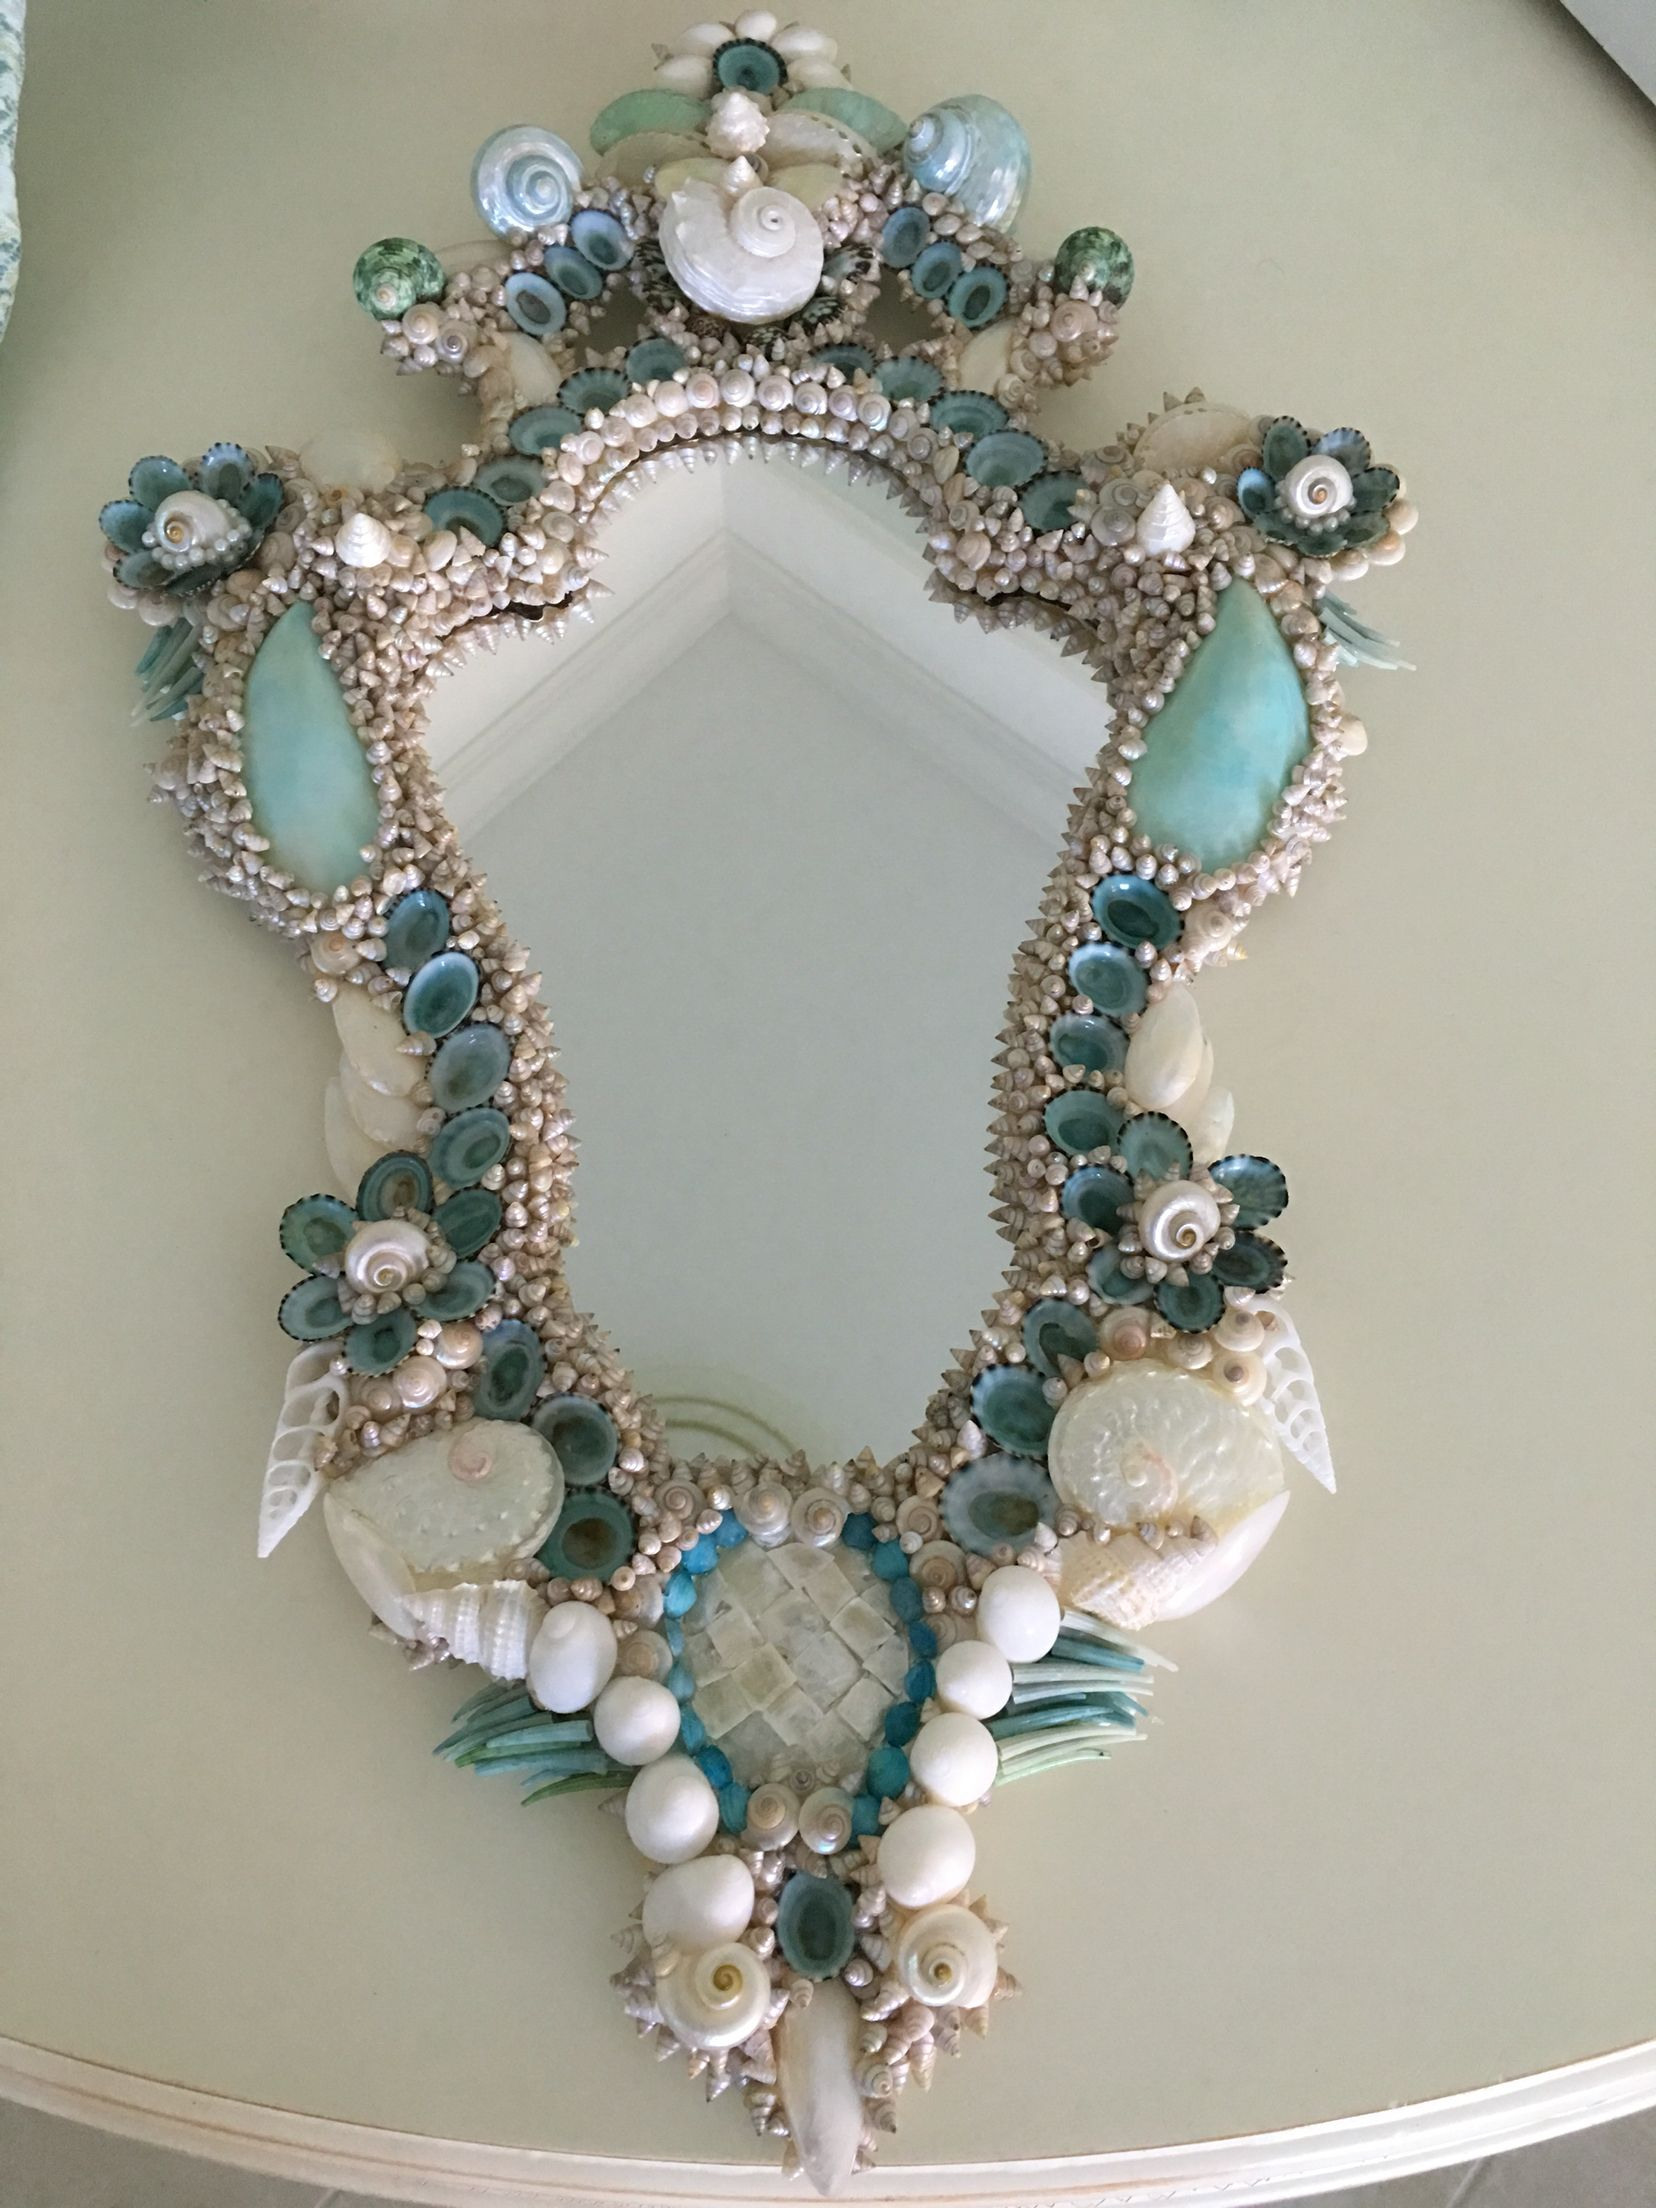 My 2nd place mirror, Sanibel Shell Show | Marcos de espejos ...